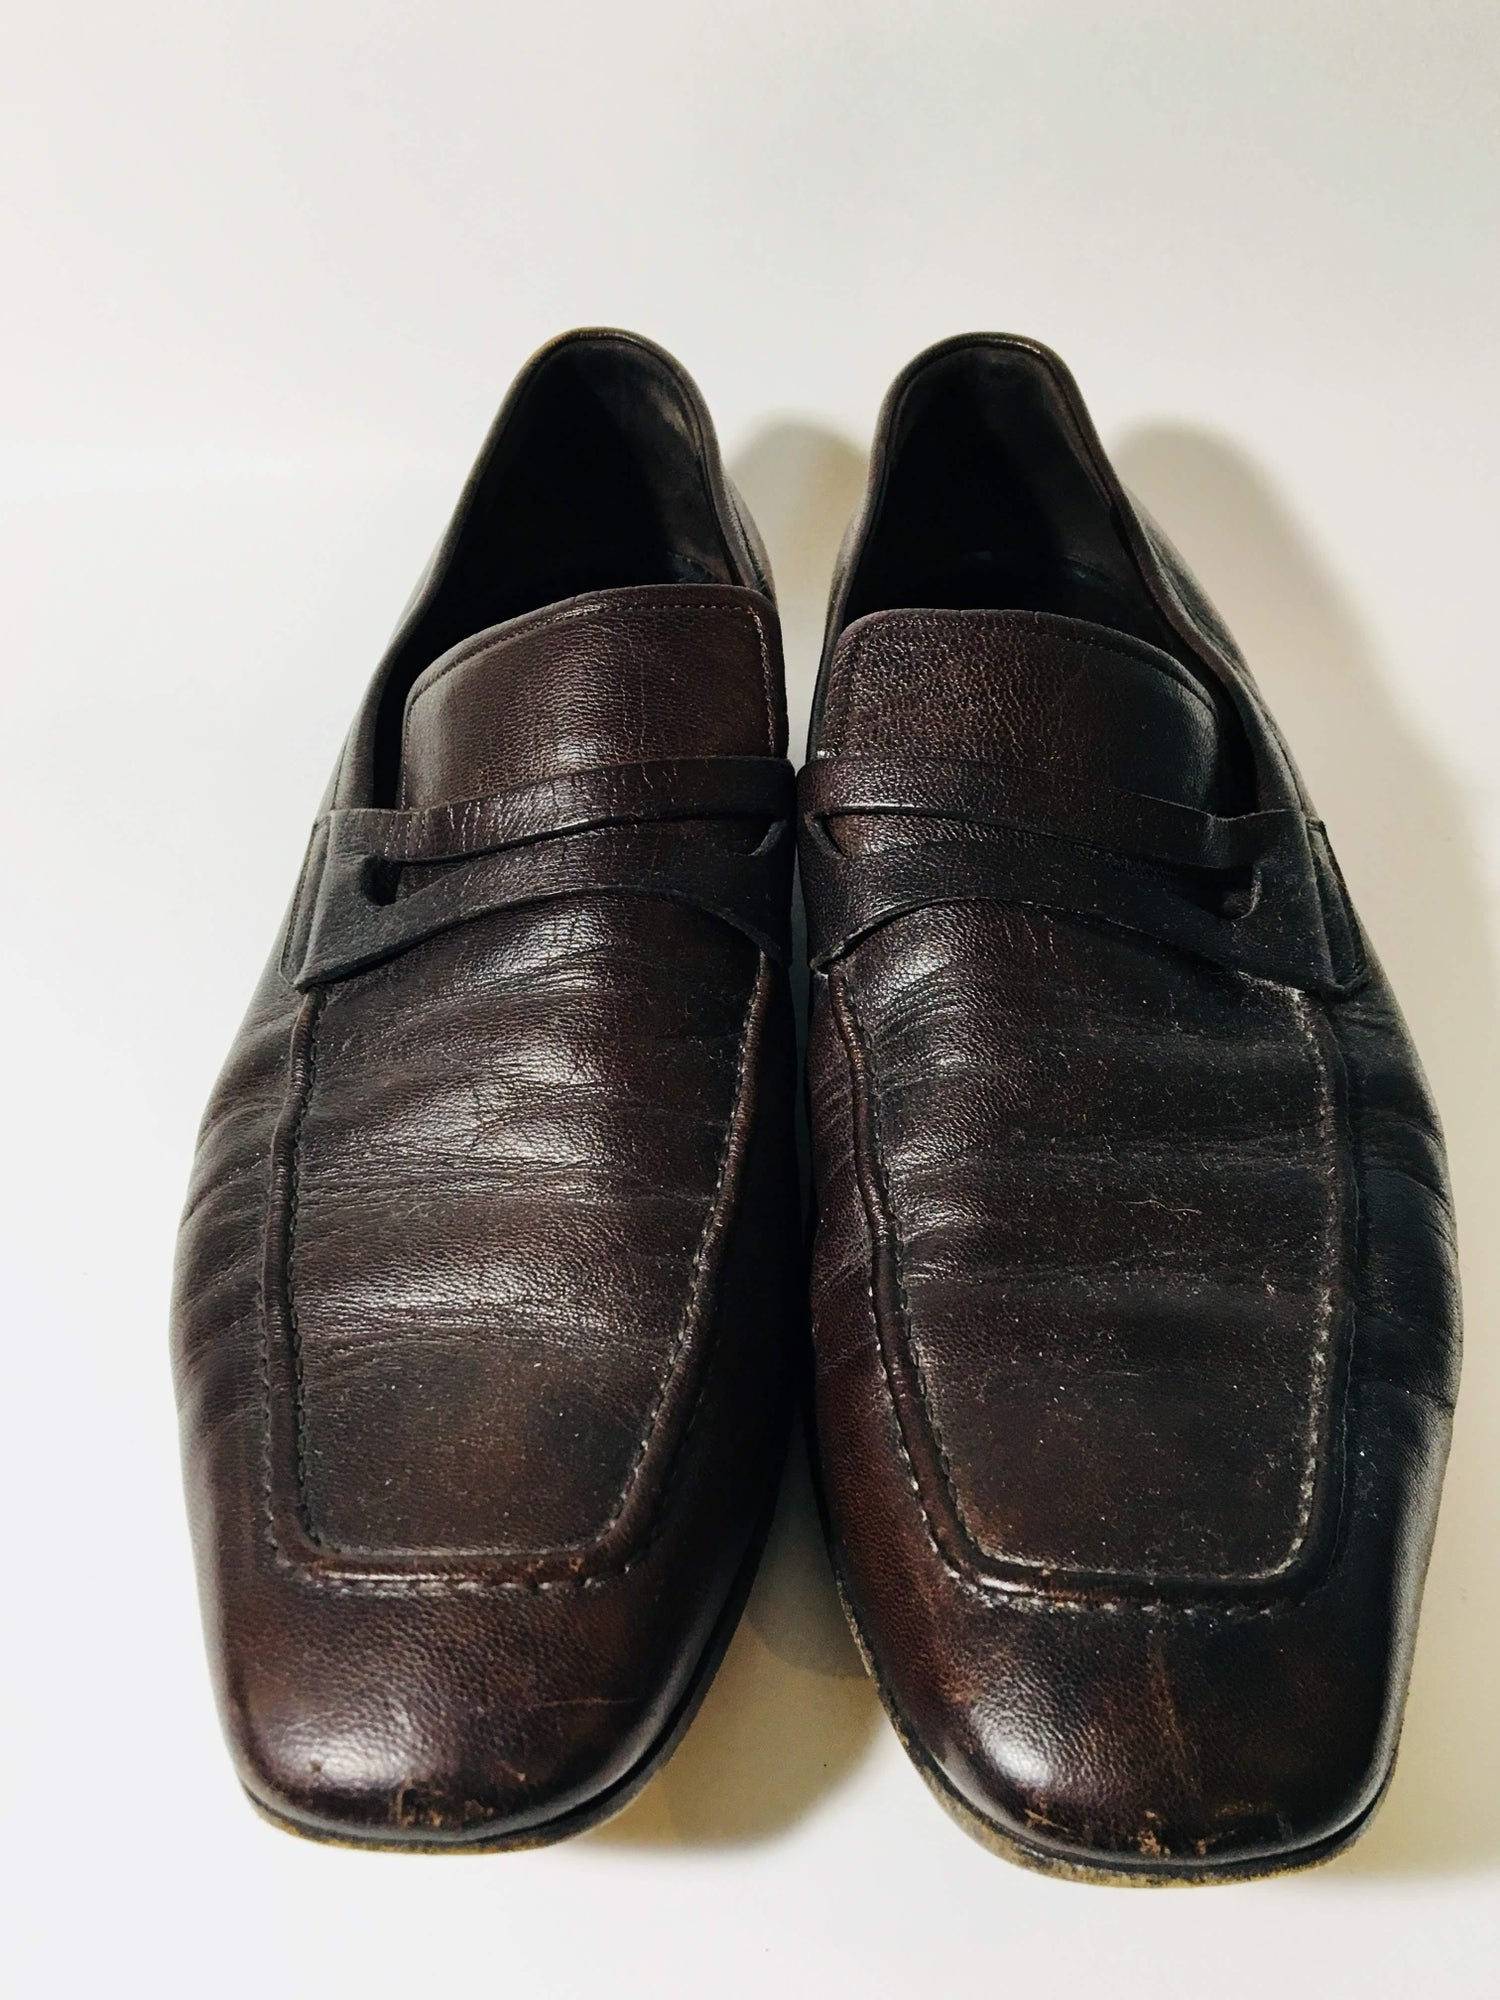 34ec76e2b84 Mens Gucci Loafers For Sale at 1stdibs